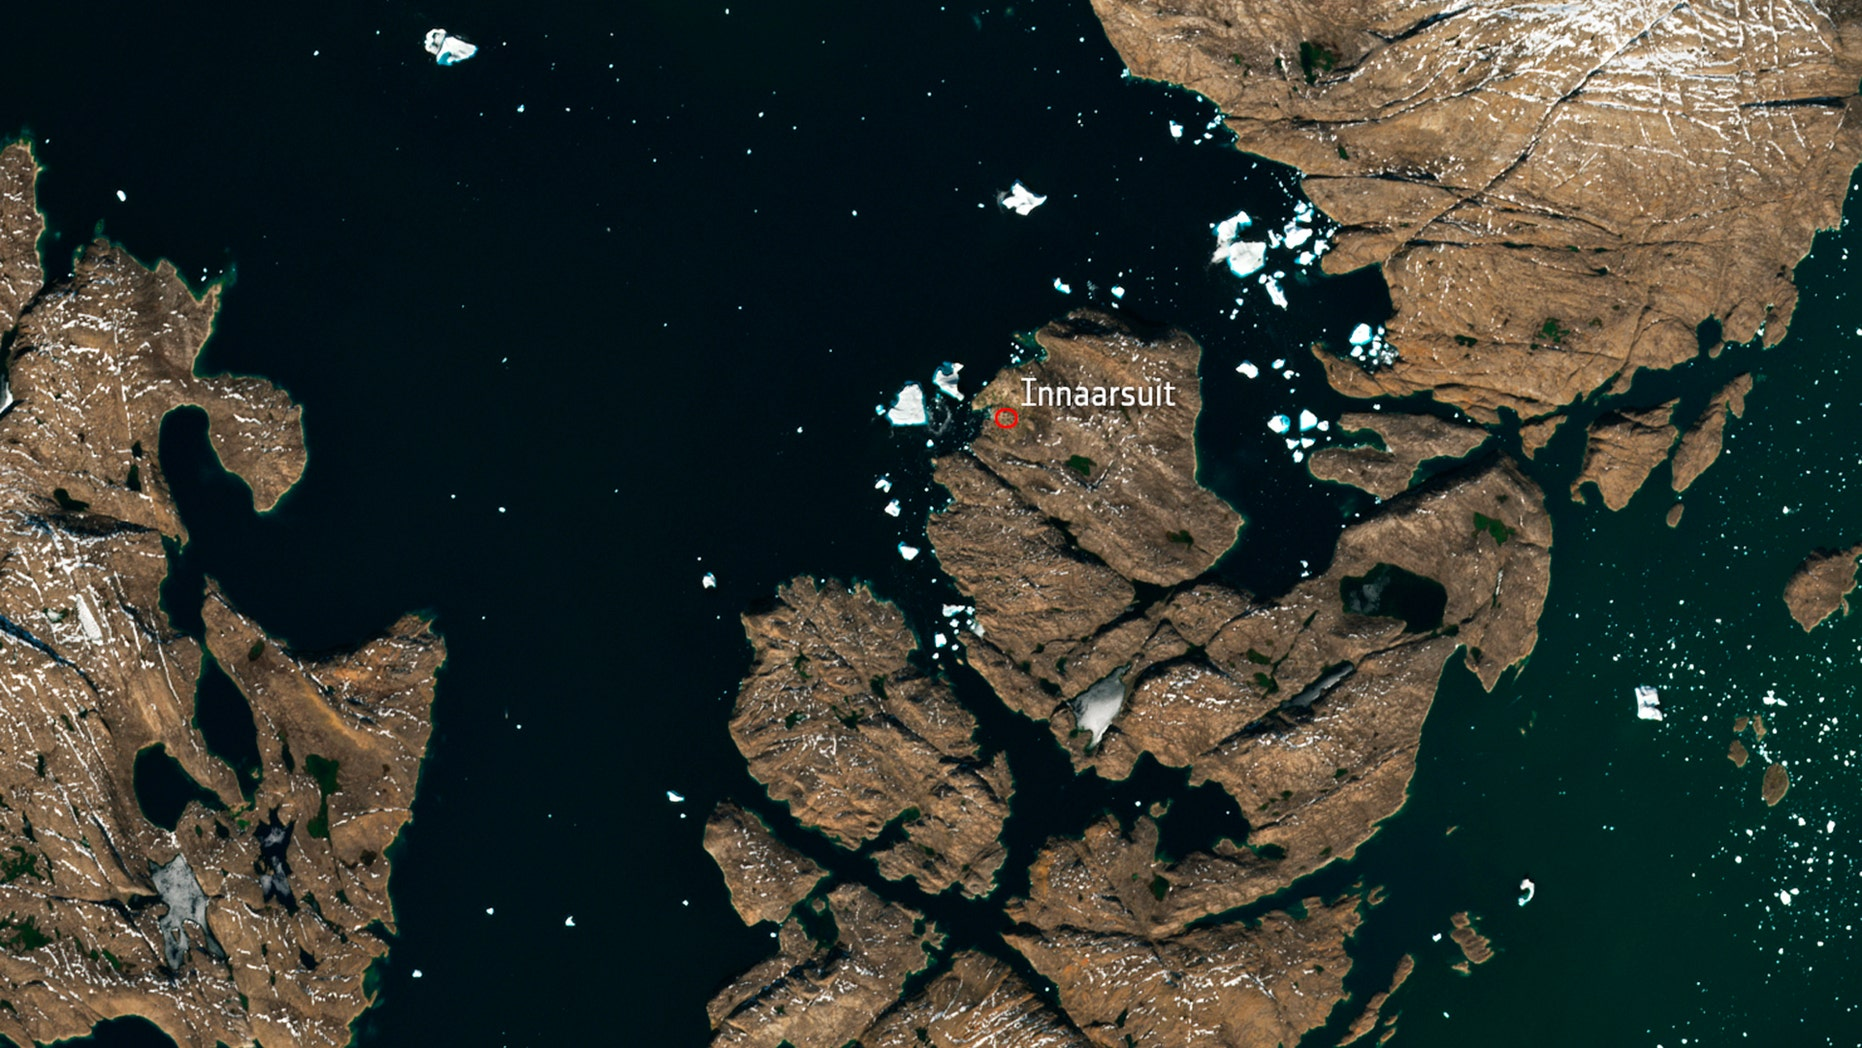 The satellite image, which was captured by Sentinel-2A on July 9, 2018, provided by European Space Agency esa on Tuesday, July 18, 2018 shows a huge iceberg perilously close to the village of Innaarsuit on the west coast of Greenland. If the berg breaks apart, waves resulting from the falling ice could wash away parts of the village. (esa via AP)